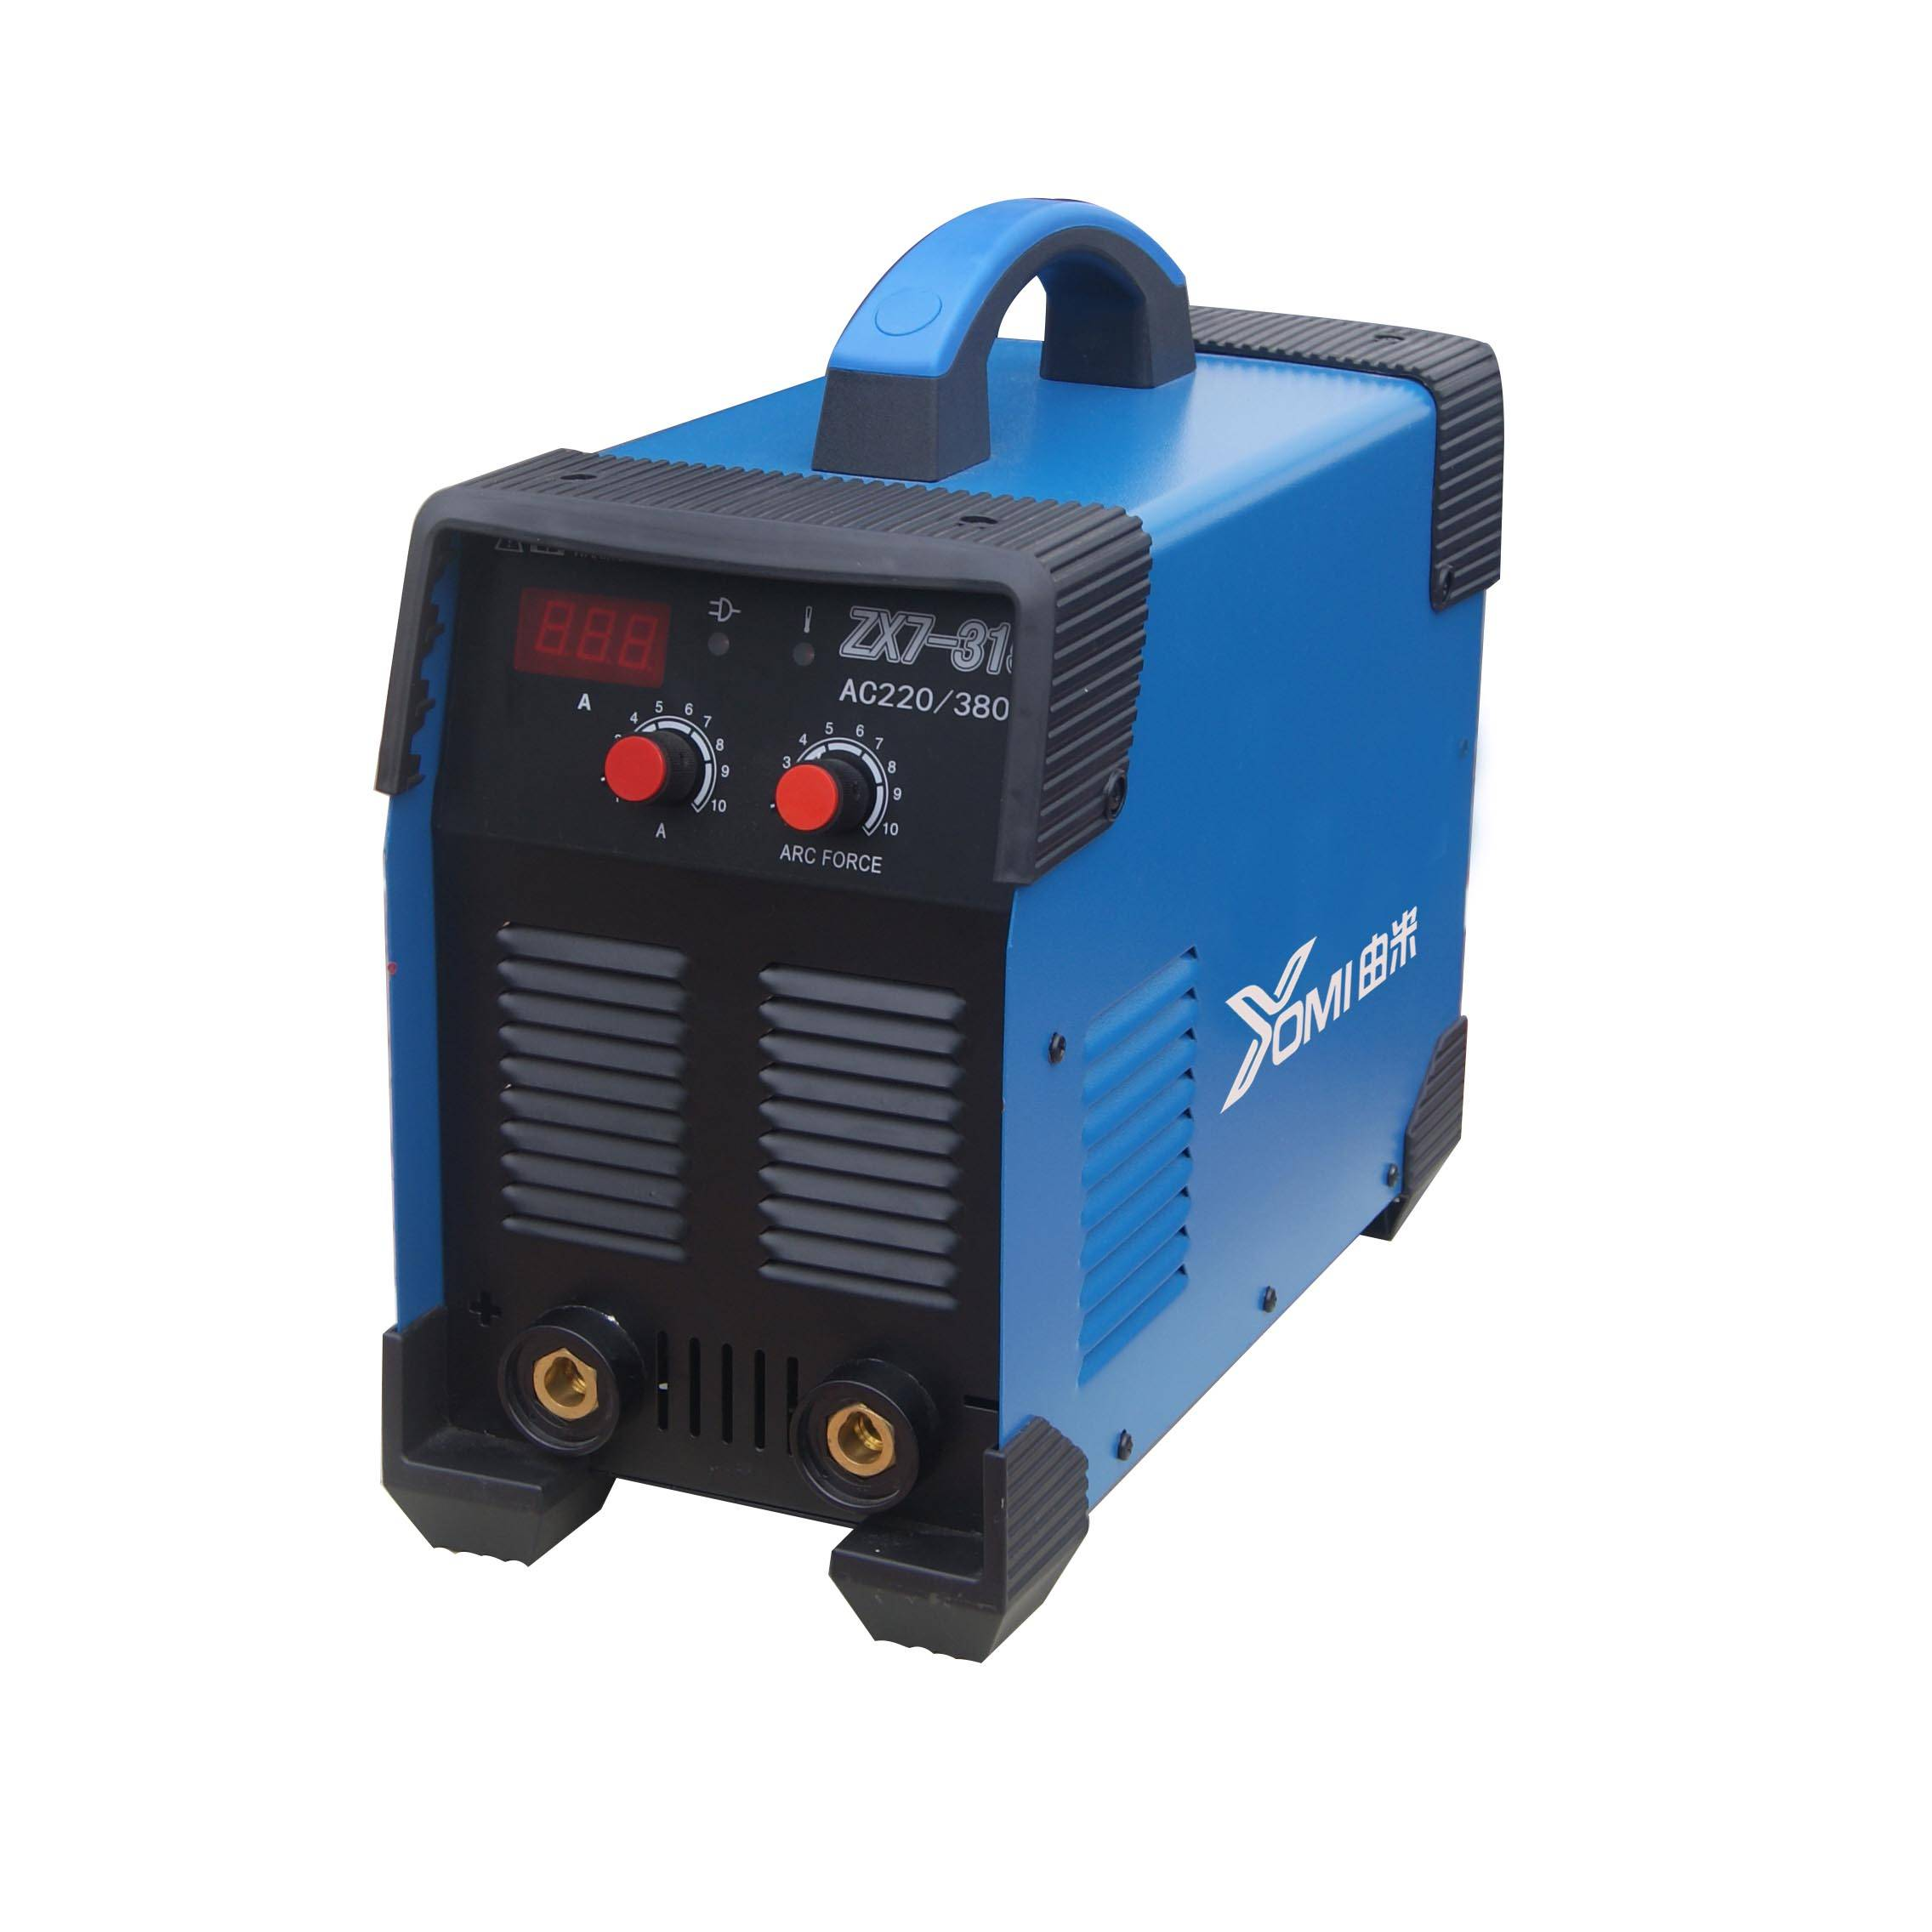 Manufacturing Companies for Welding Machine Mma -